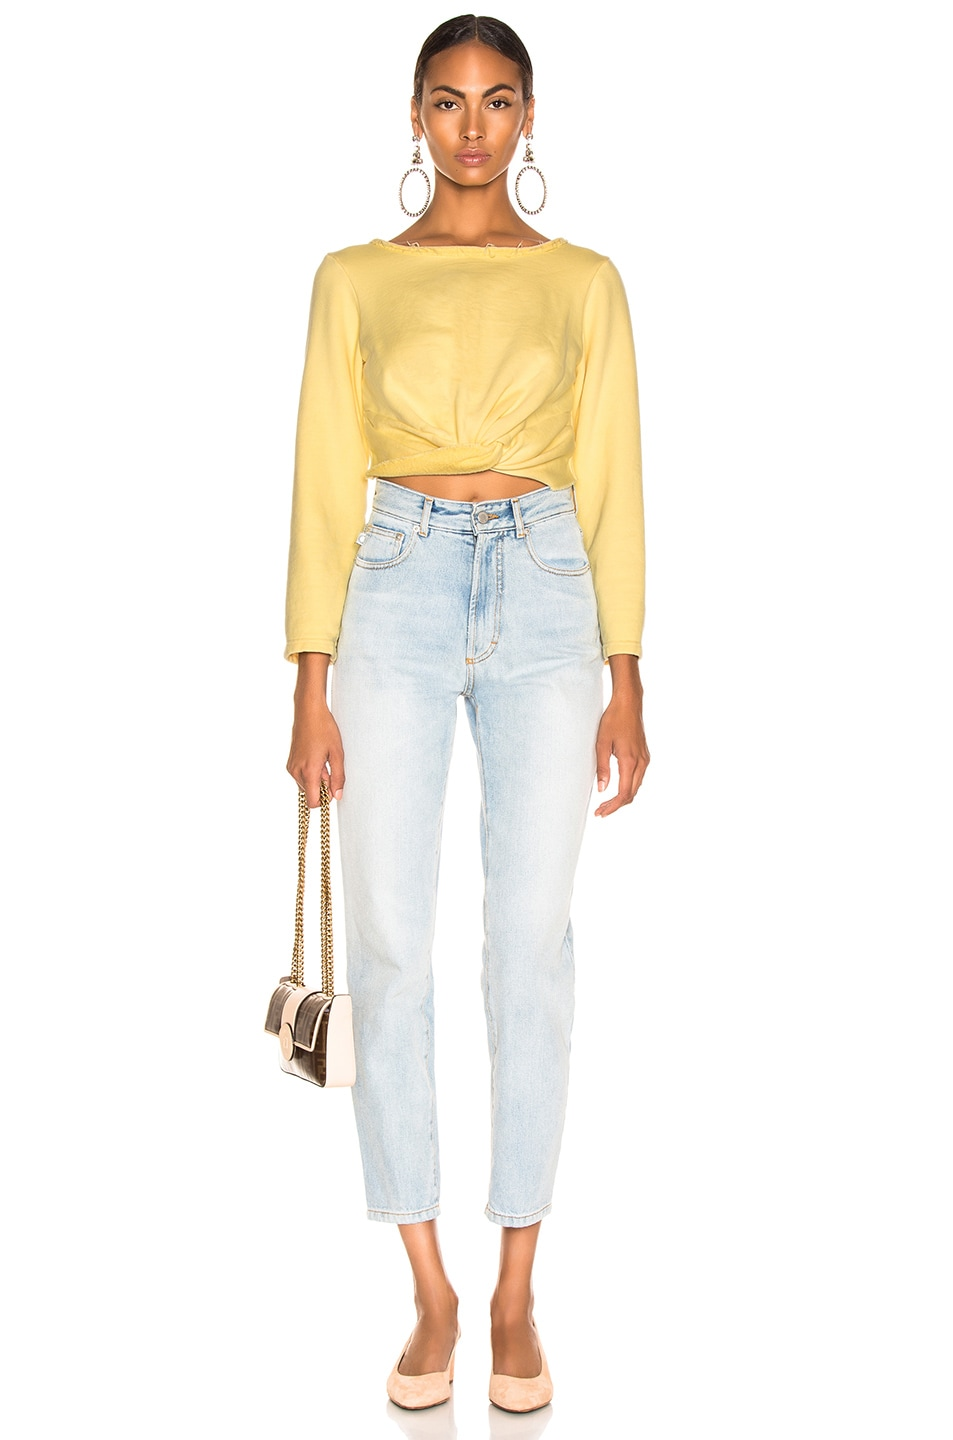 Image 4 of Rachel Comey Argento Sweatshirt  in Lemon